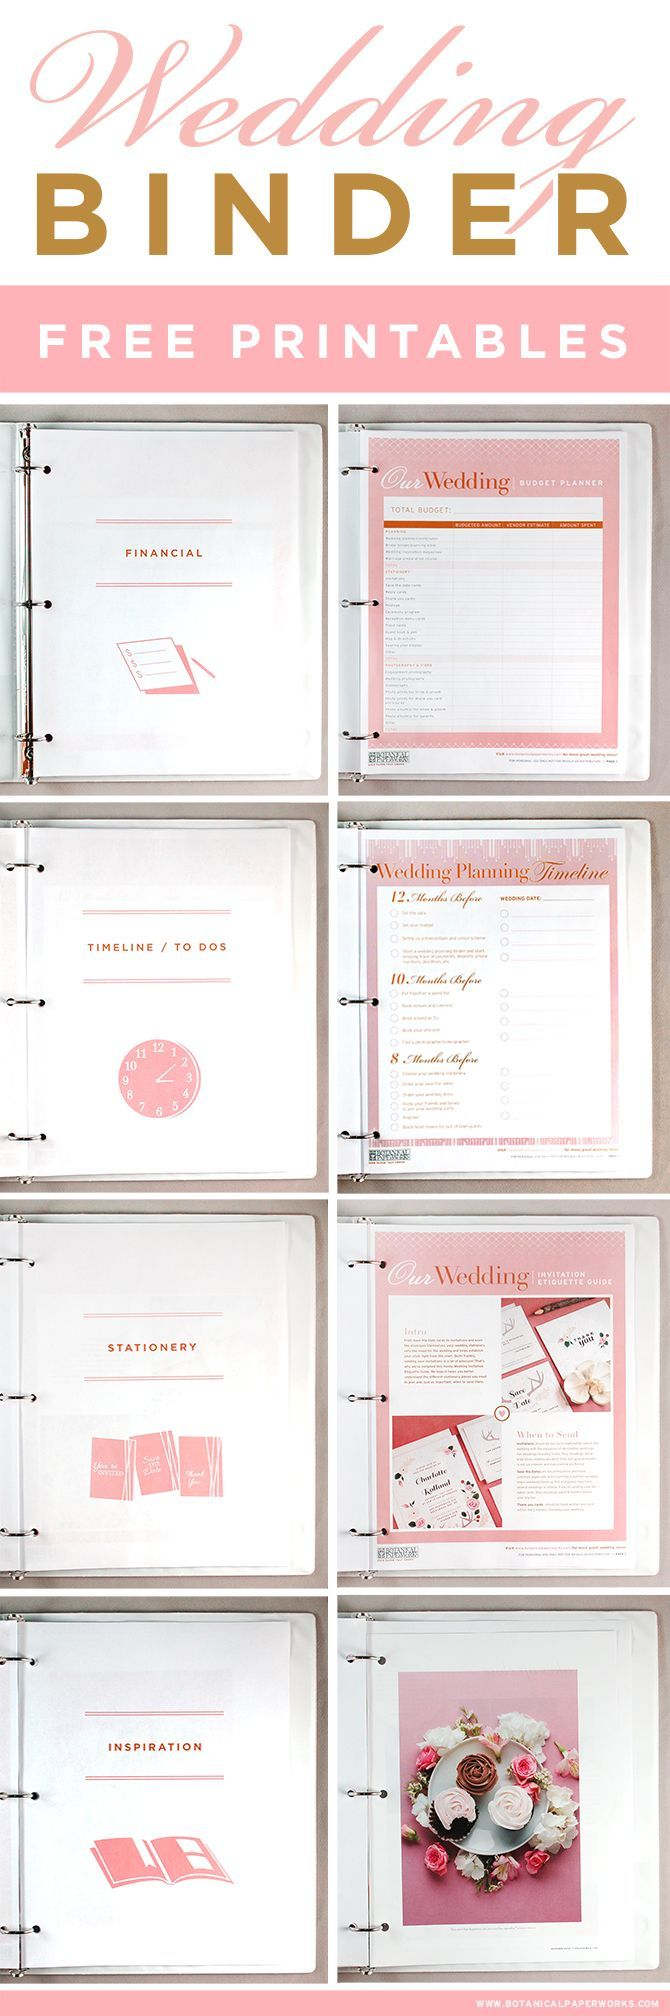 Best 25 wedding planning checklist ideas on pinterest wedding check how to plan wedding professionally httptips wedding junglespirit Images